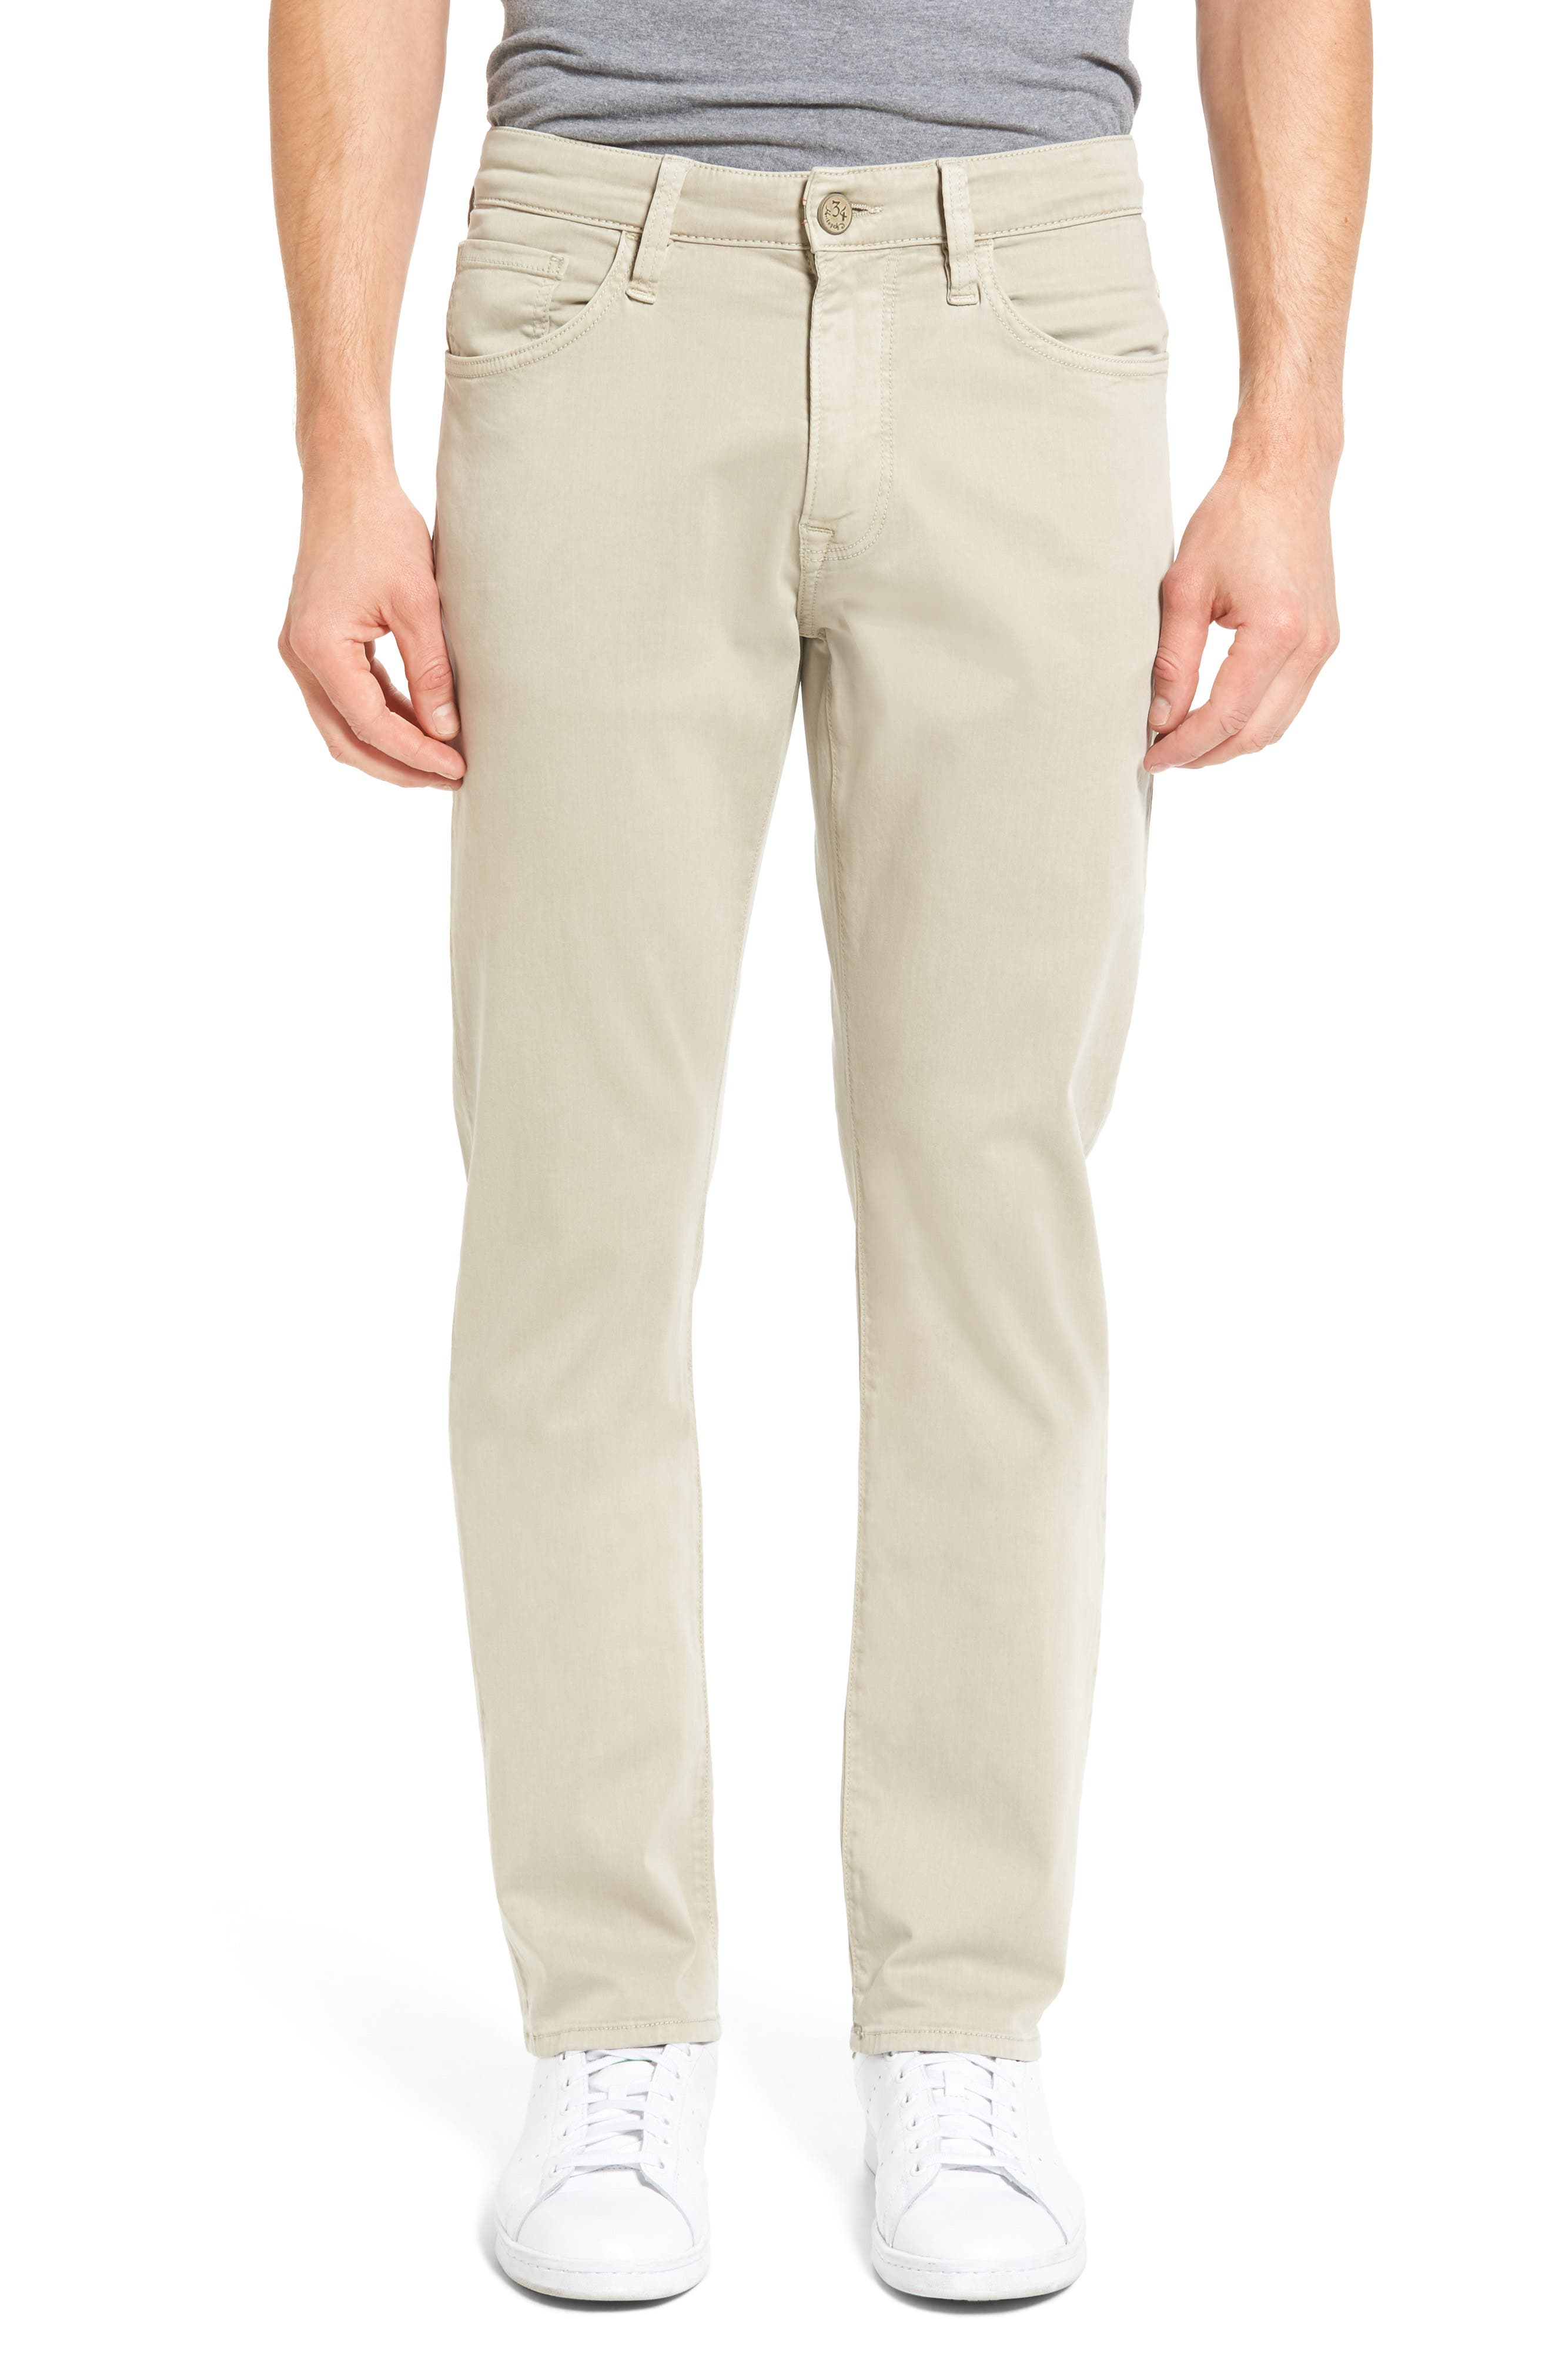 Courage Straight Leg Jeans,                         Main,                         color, STONE TWILL